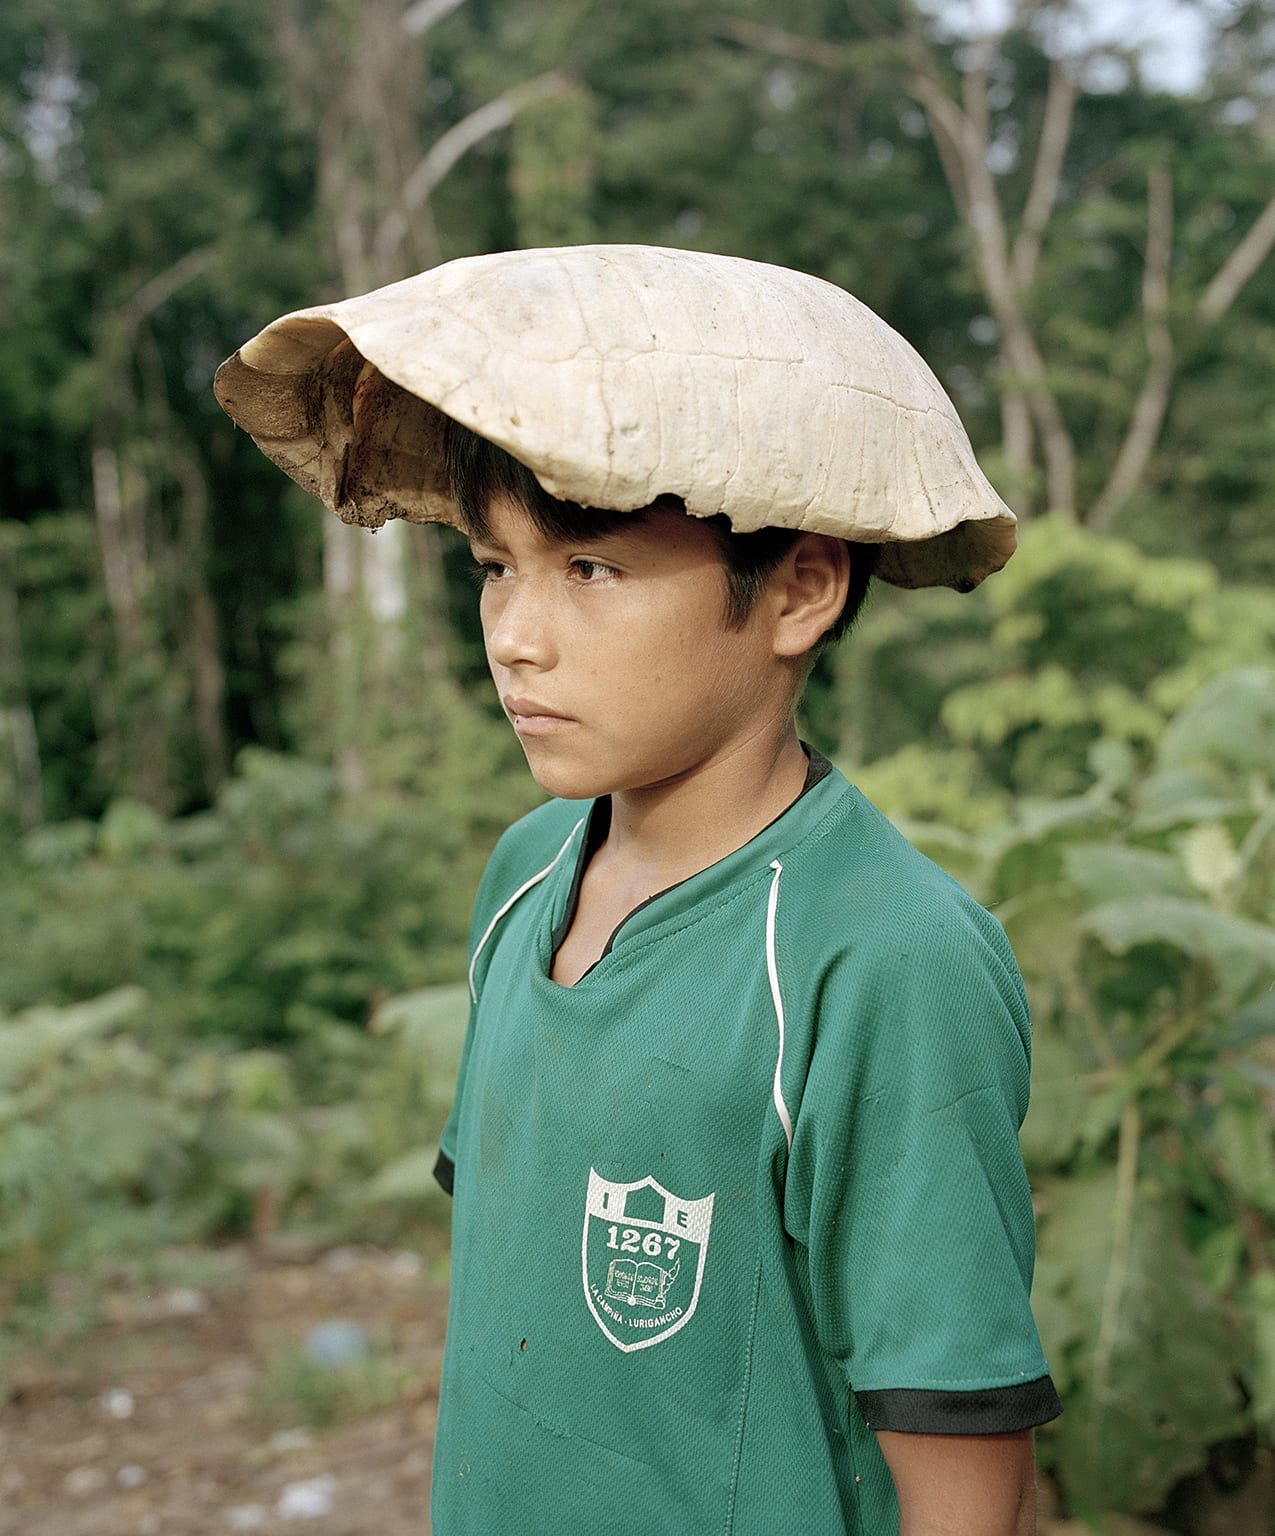 Yann Gross, The Turtle Cap, 2012, from The Jungle Book (Aperture, 2016)  After lunch, a kid plays with a turtle shell, Bolívar Community, Peru. Turtle is one of the favorite meals in the Amazon.